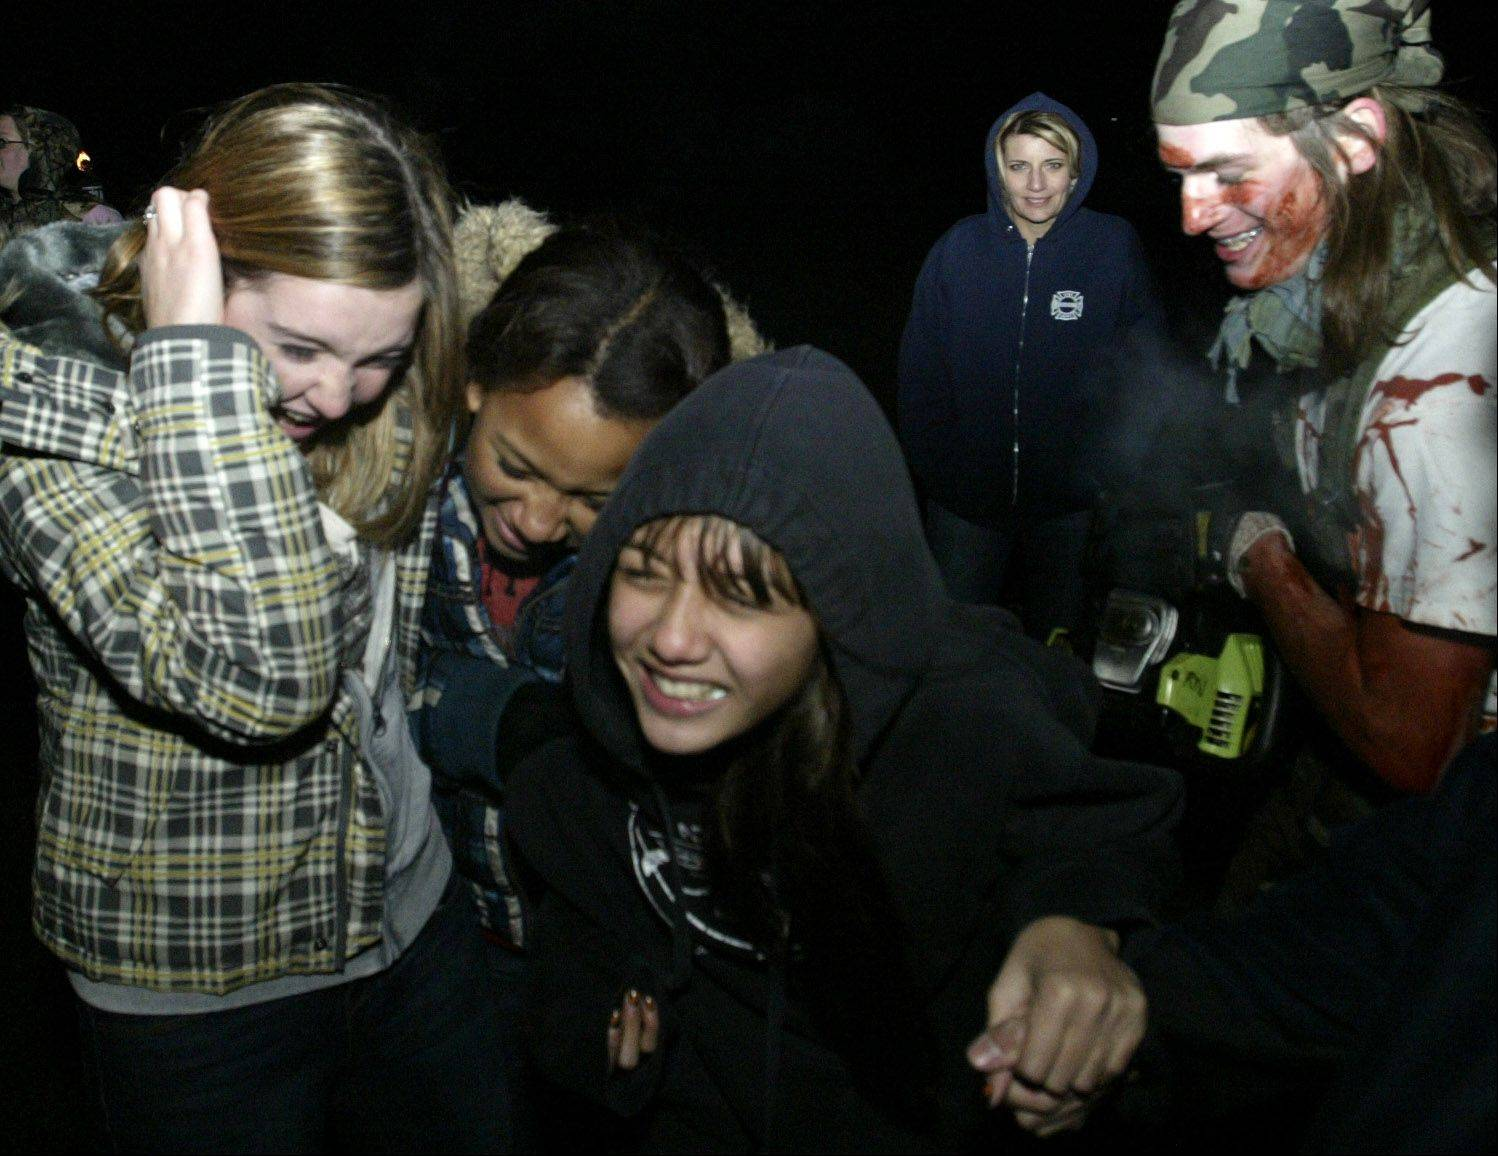 Jesse Rohloff, 19, of Elgin scares, from left, Michele Ruiz, 13, of Gilberts; Kaycee Cooper, 13, of Gilberts; and Amanda Groves, 13, of Algonquin during the Burden Acres Haunted Hike at Camp Big Timber in Elgin.